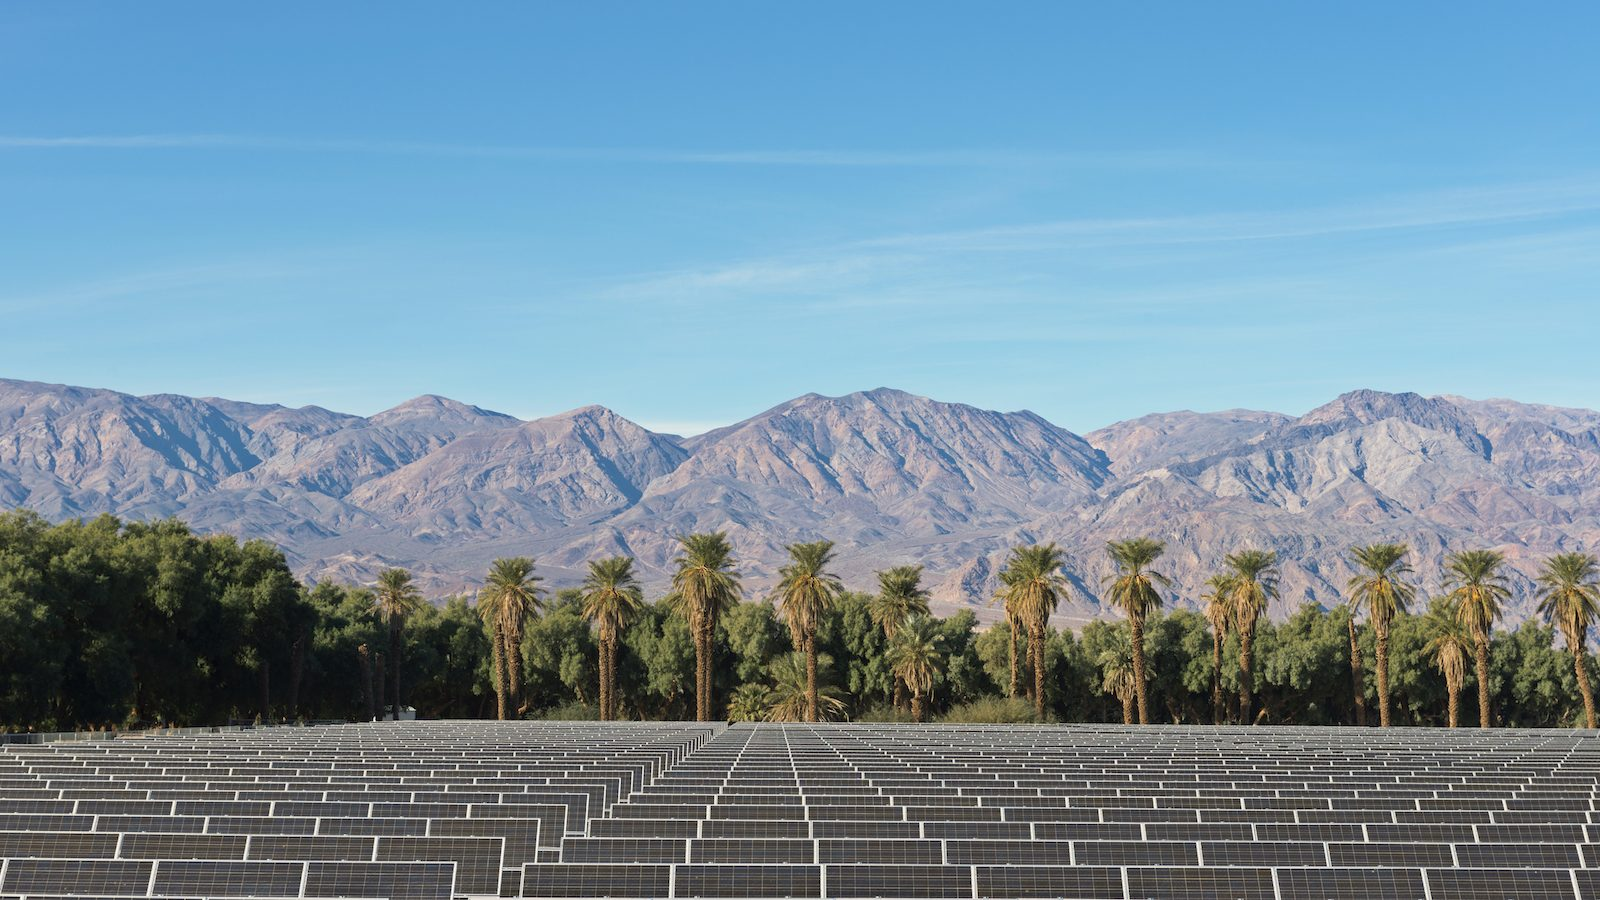 solar panels in front of palm trees and mountains